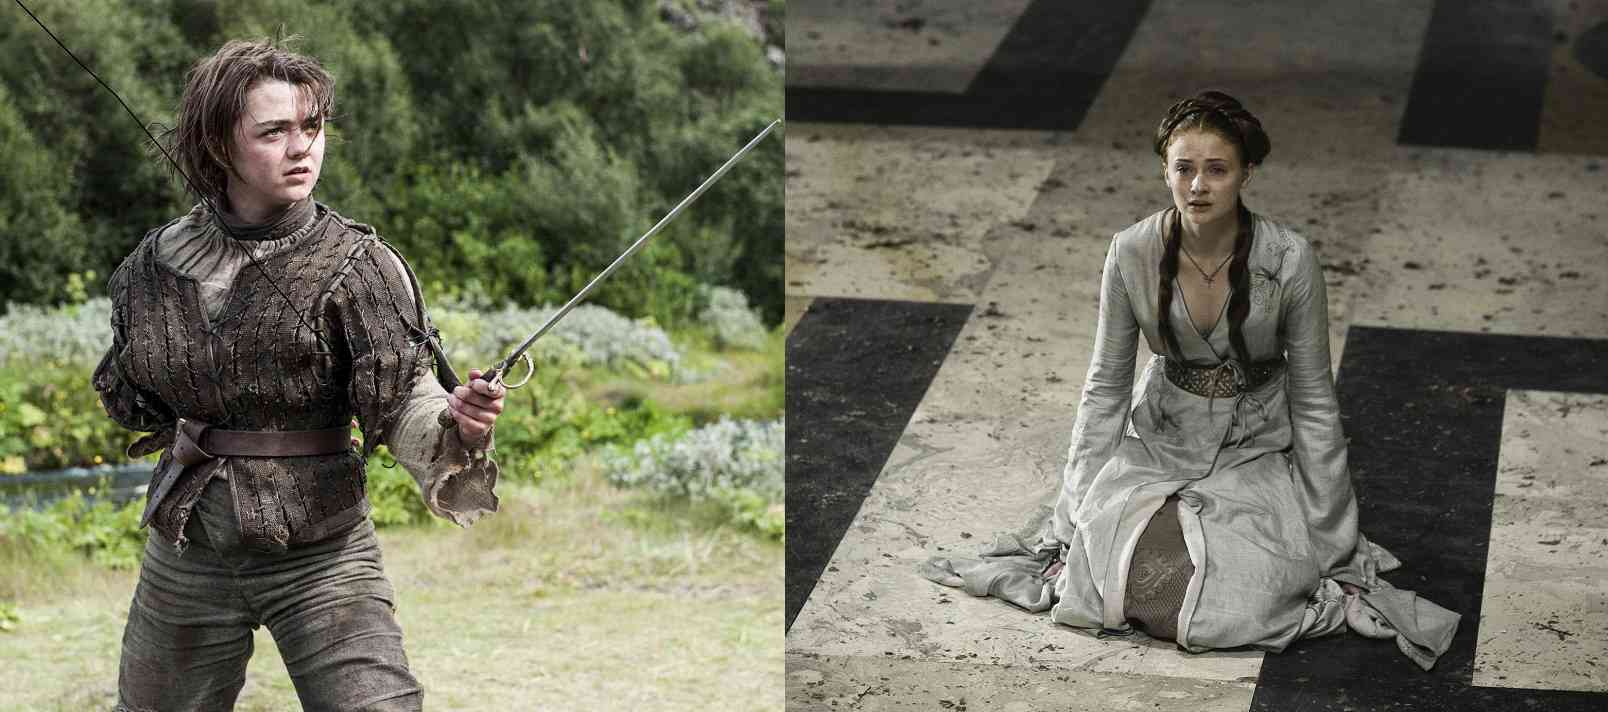 Arya Stark (Maisie Williams) and Sansa Stark (Sophie Turner) in Game of Thrones. Courtesy HBO.